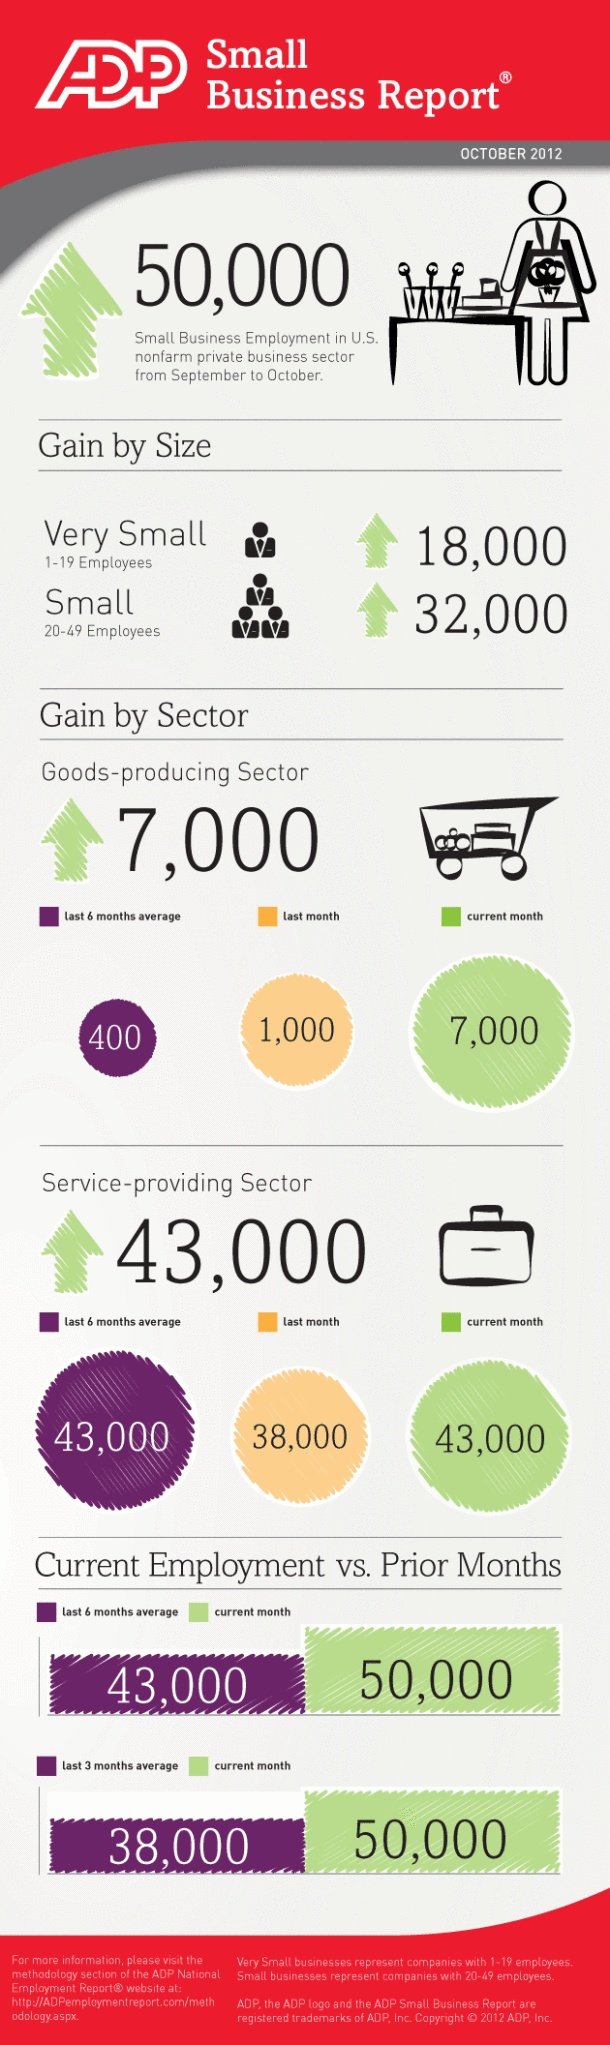 ADP Small Business Report[INFOGRAPHIC]